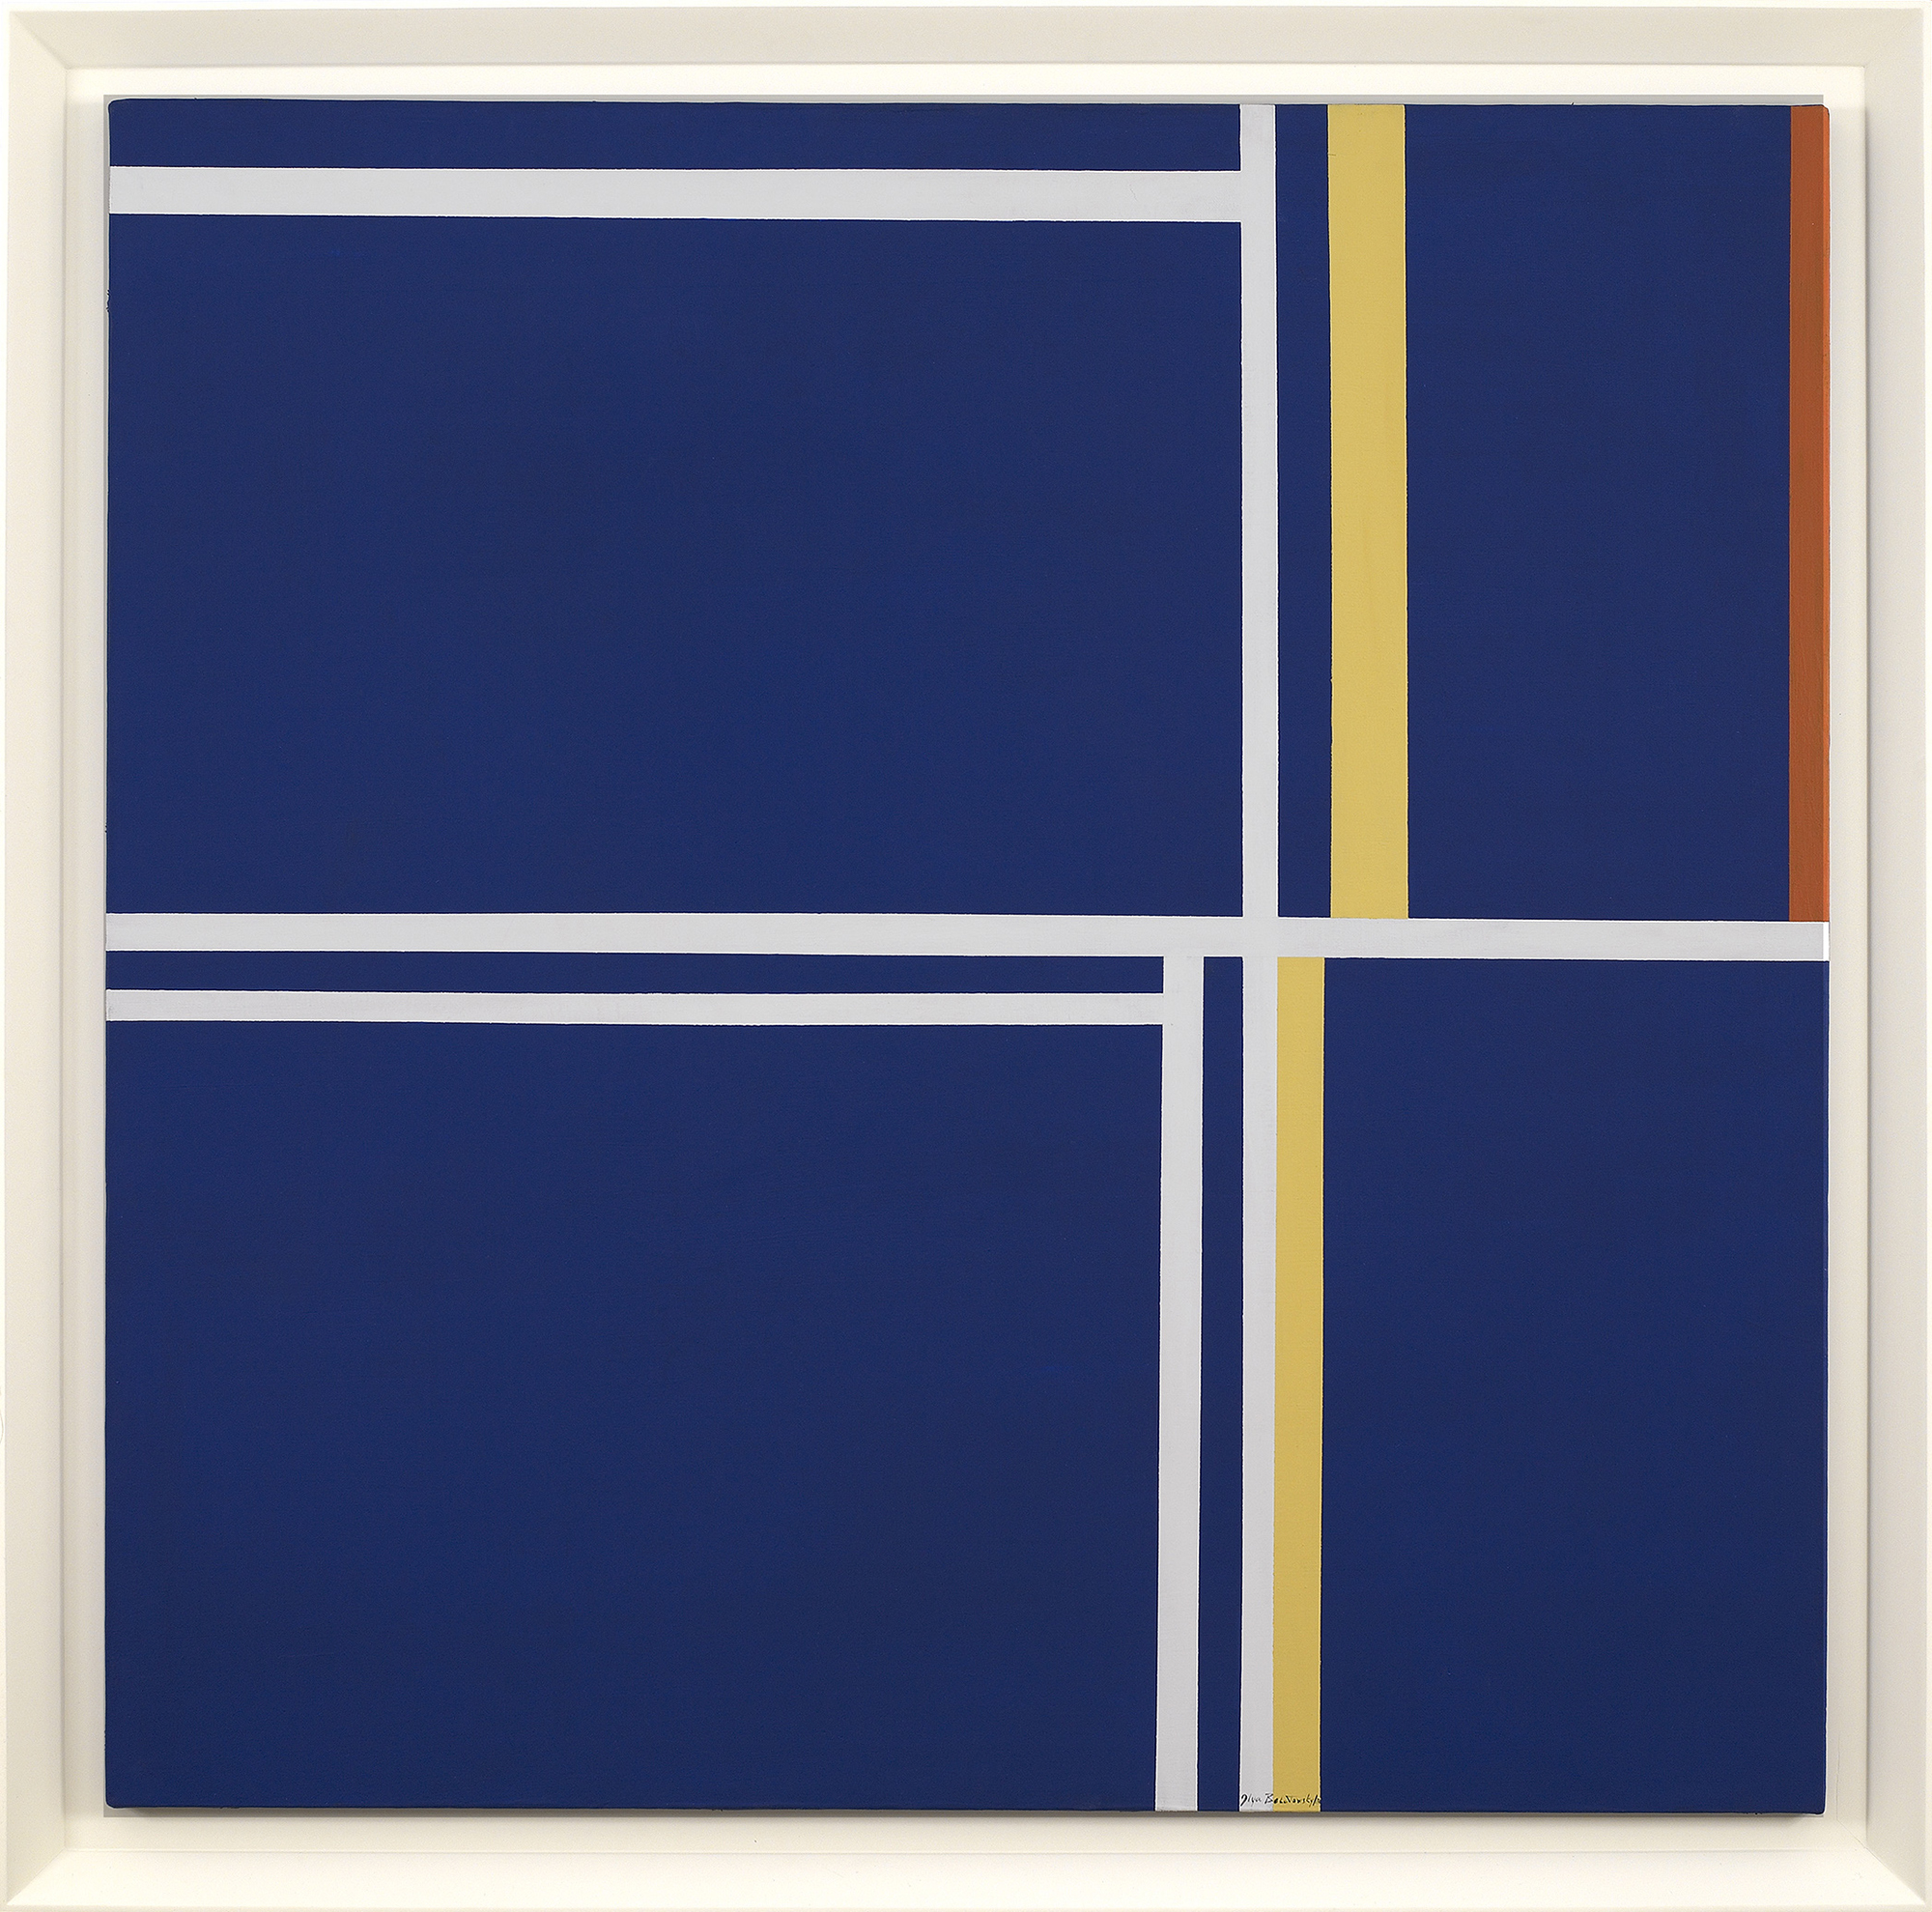 SOLD  Abstraction in Square  , 1978, oil on canvas, 40 x 40 inches